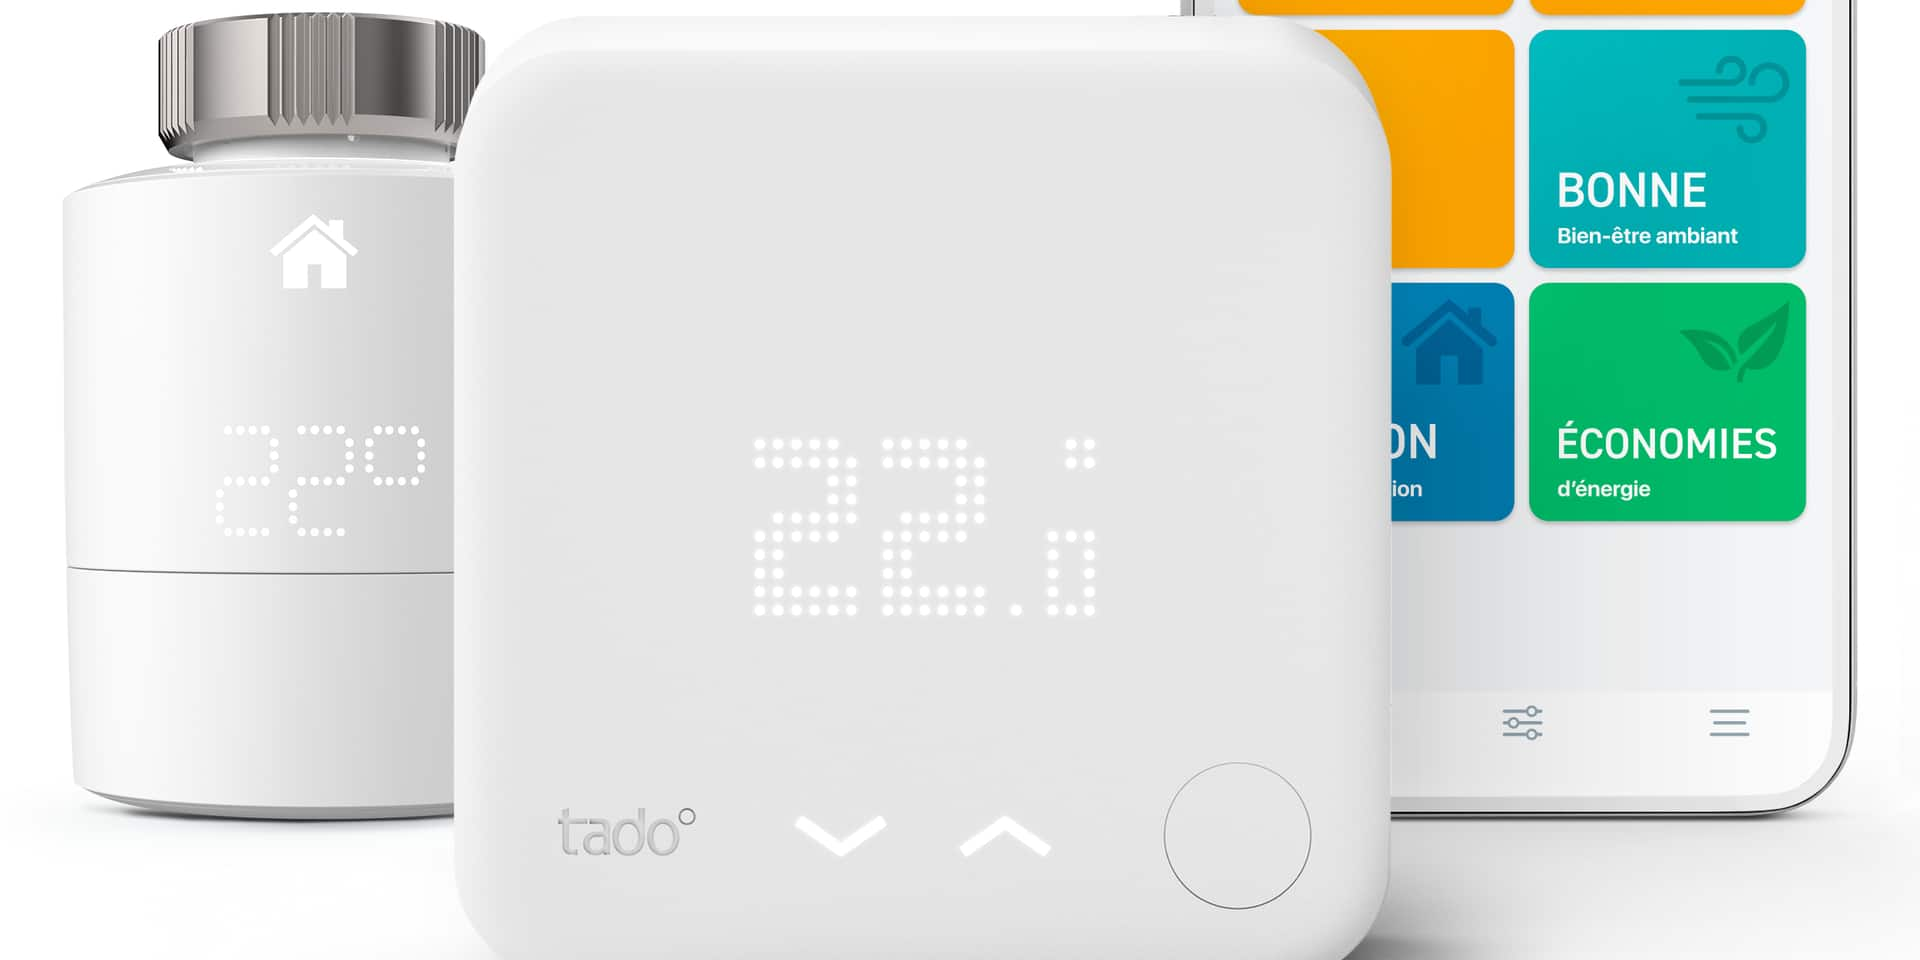 4 Kits Thermostat Intelligent tado à gagner !